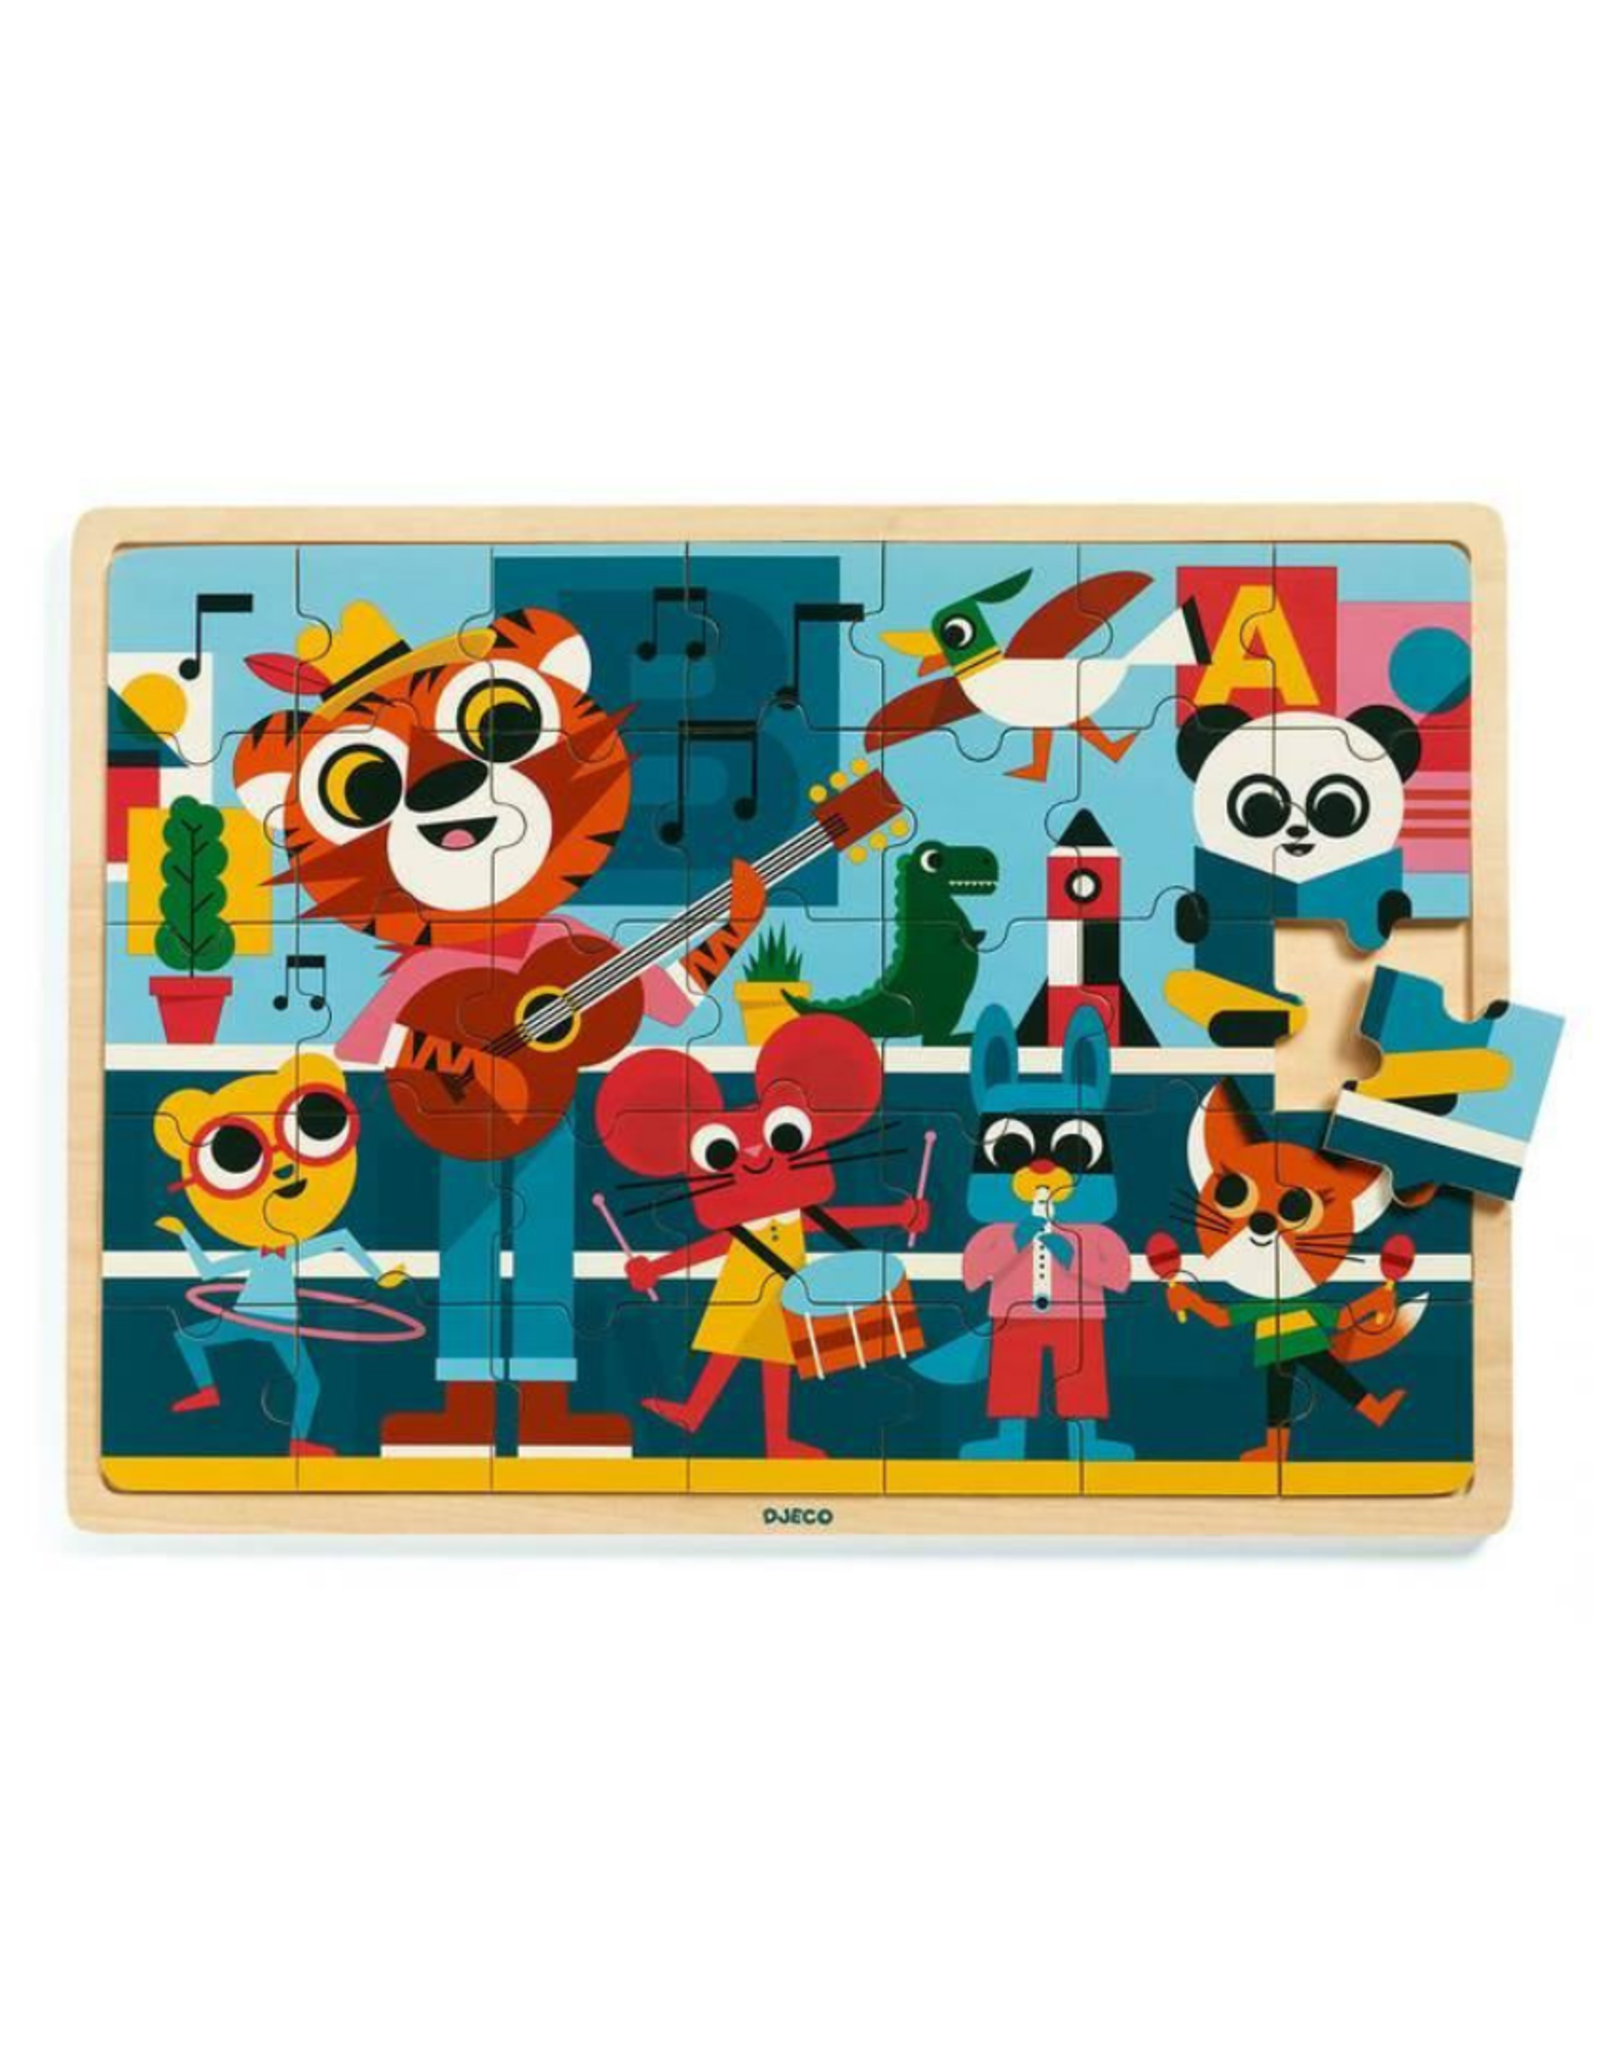 Djeco Wooden Jigsaw Puzzle - Puzzlo Music